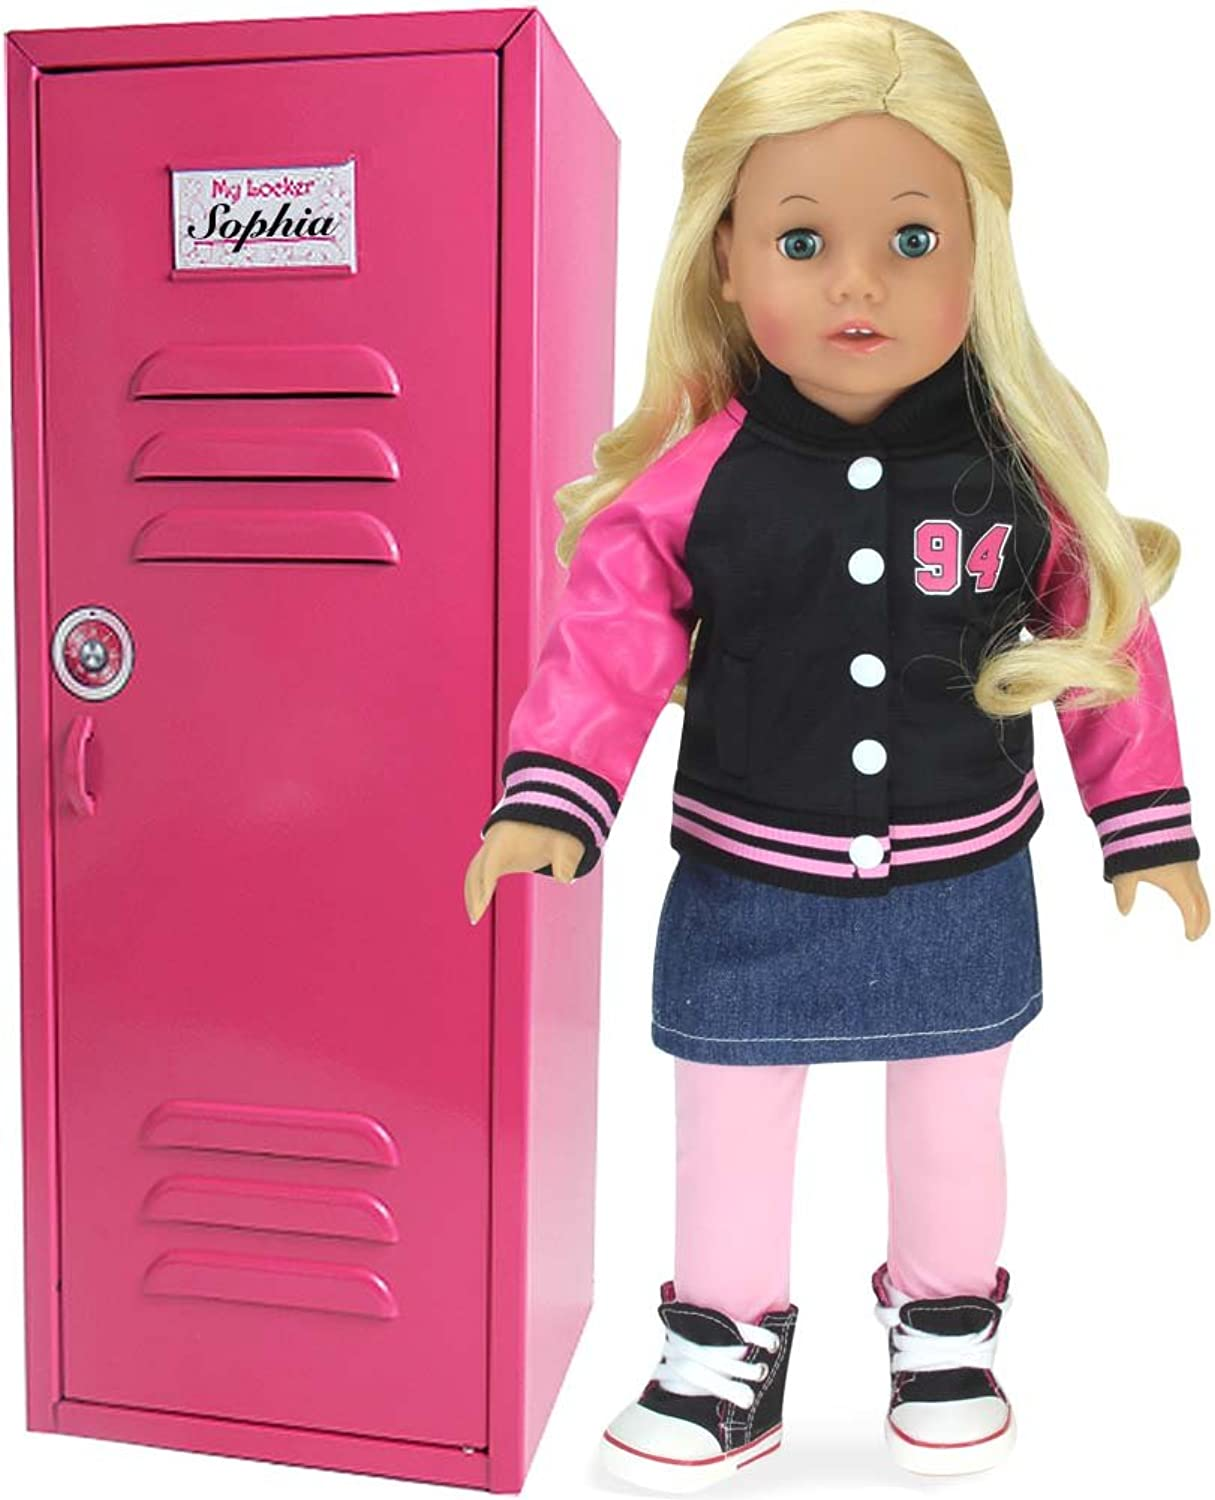 18 Inch Doll Clothes Locker for American Girl Doll Bed Rooms & More  18  Doll Furniture of Pink Metal Doll Locker